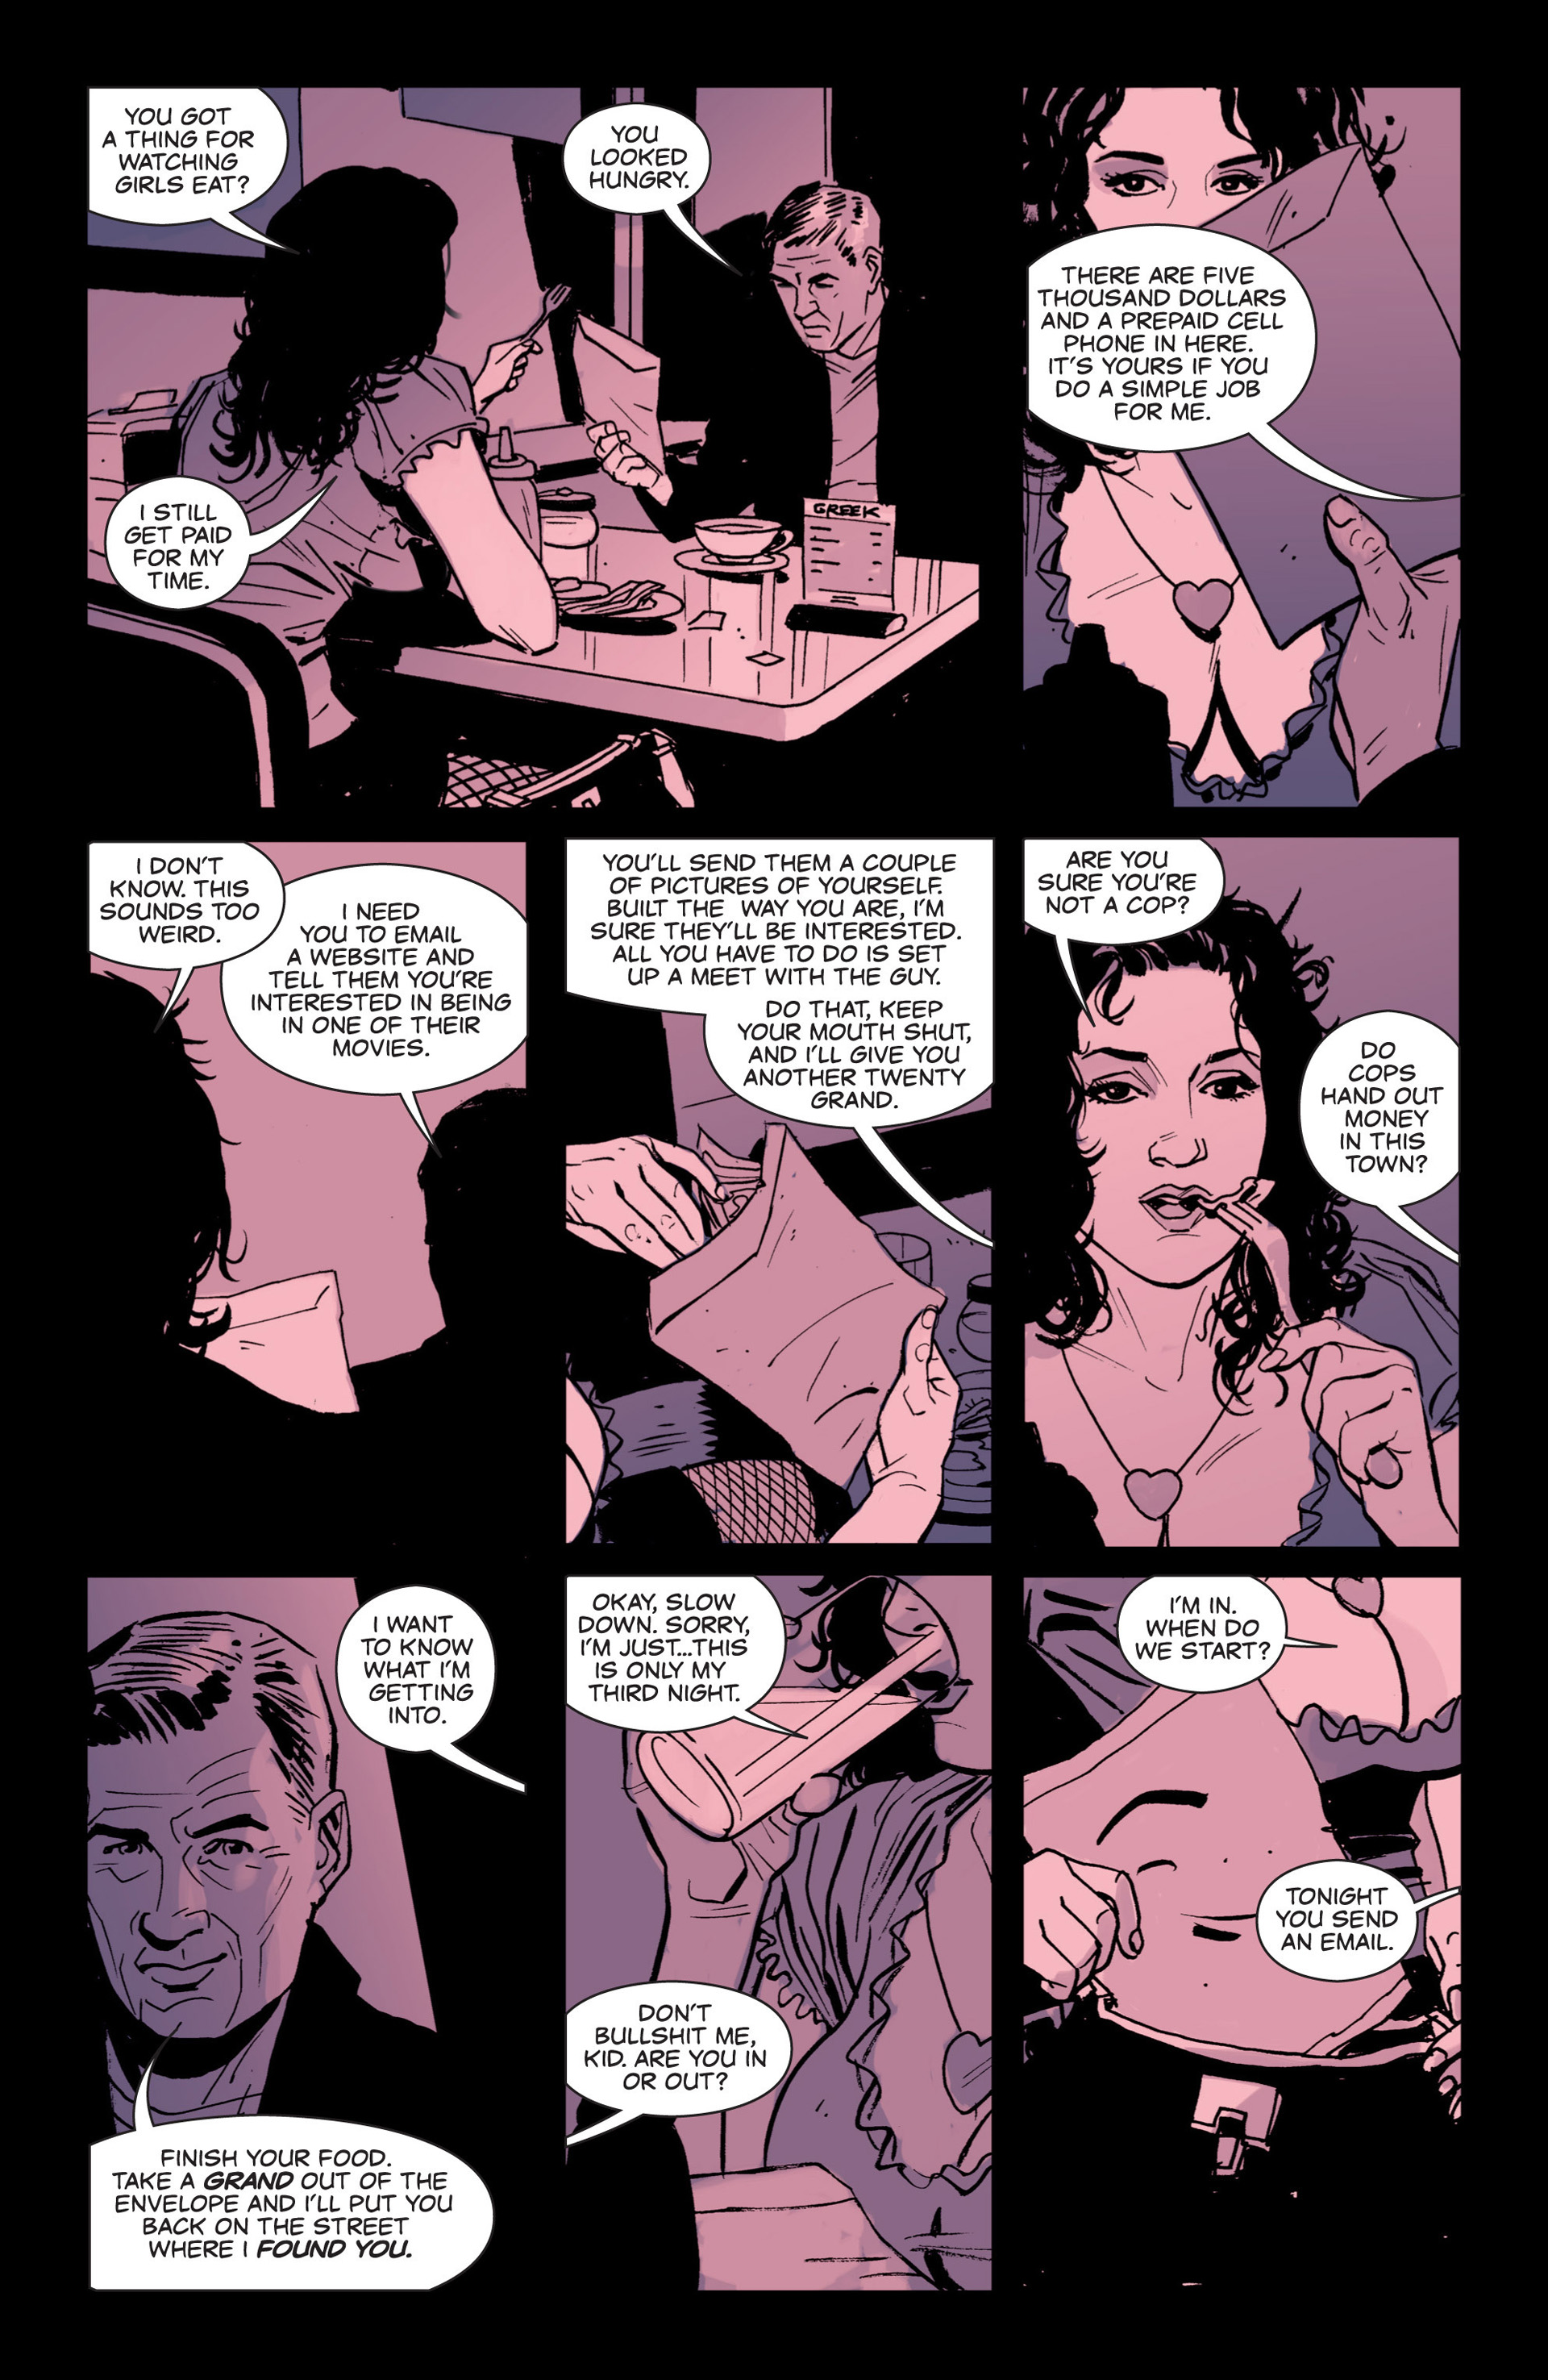 Read online Sex and Violence comic -  Issue # Full - 11